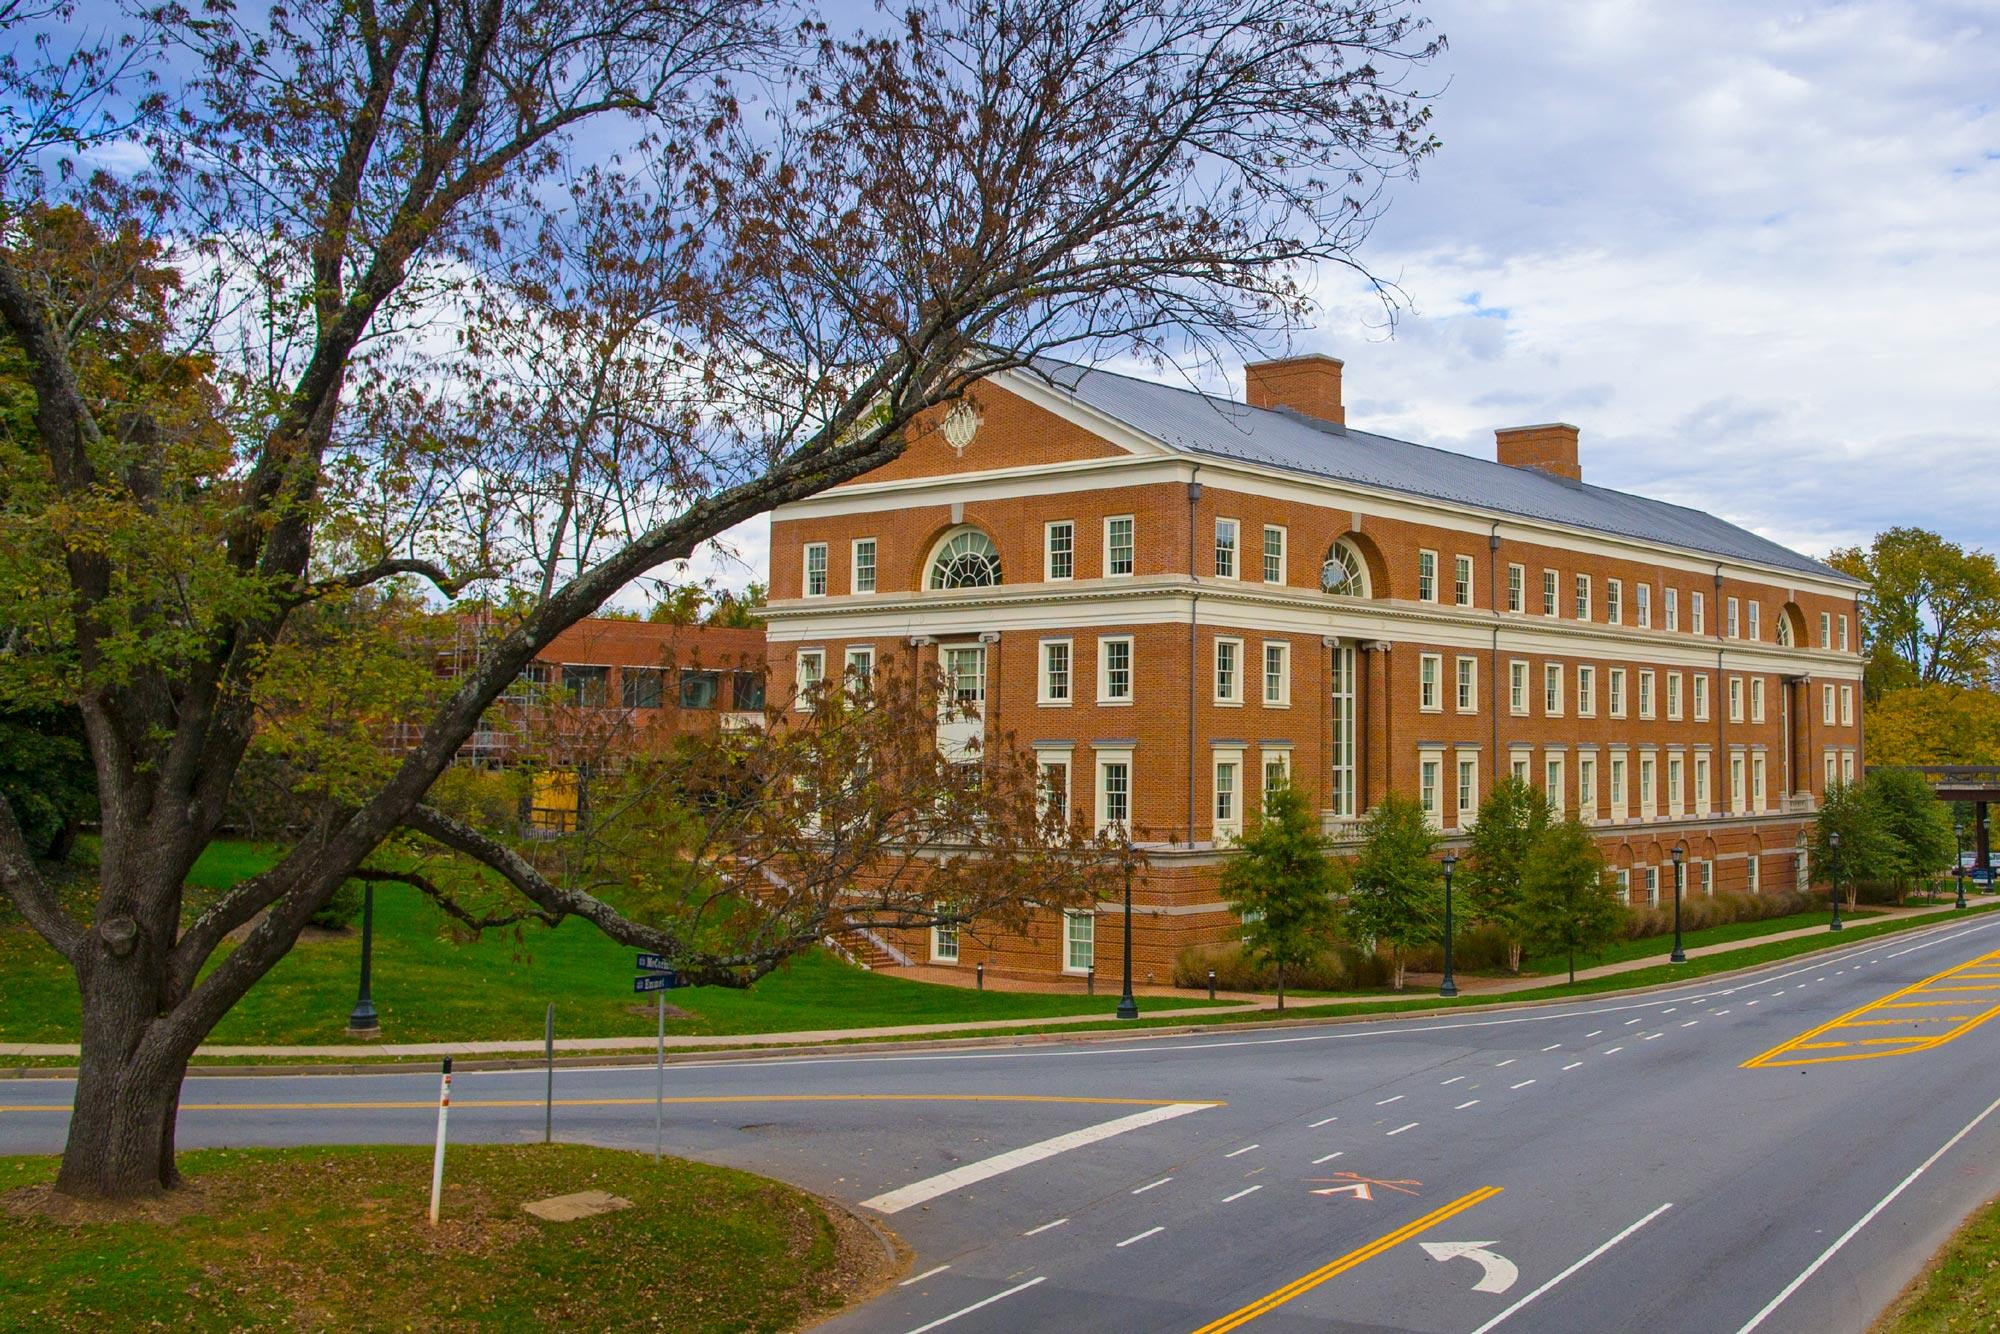 Bavarro Hall in Charlottesville houses the University of Virginia's Curry School of Education and Human Development